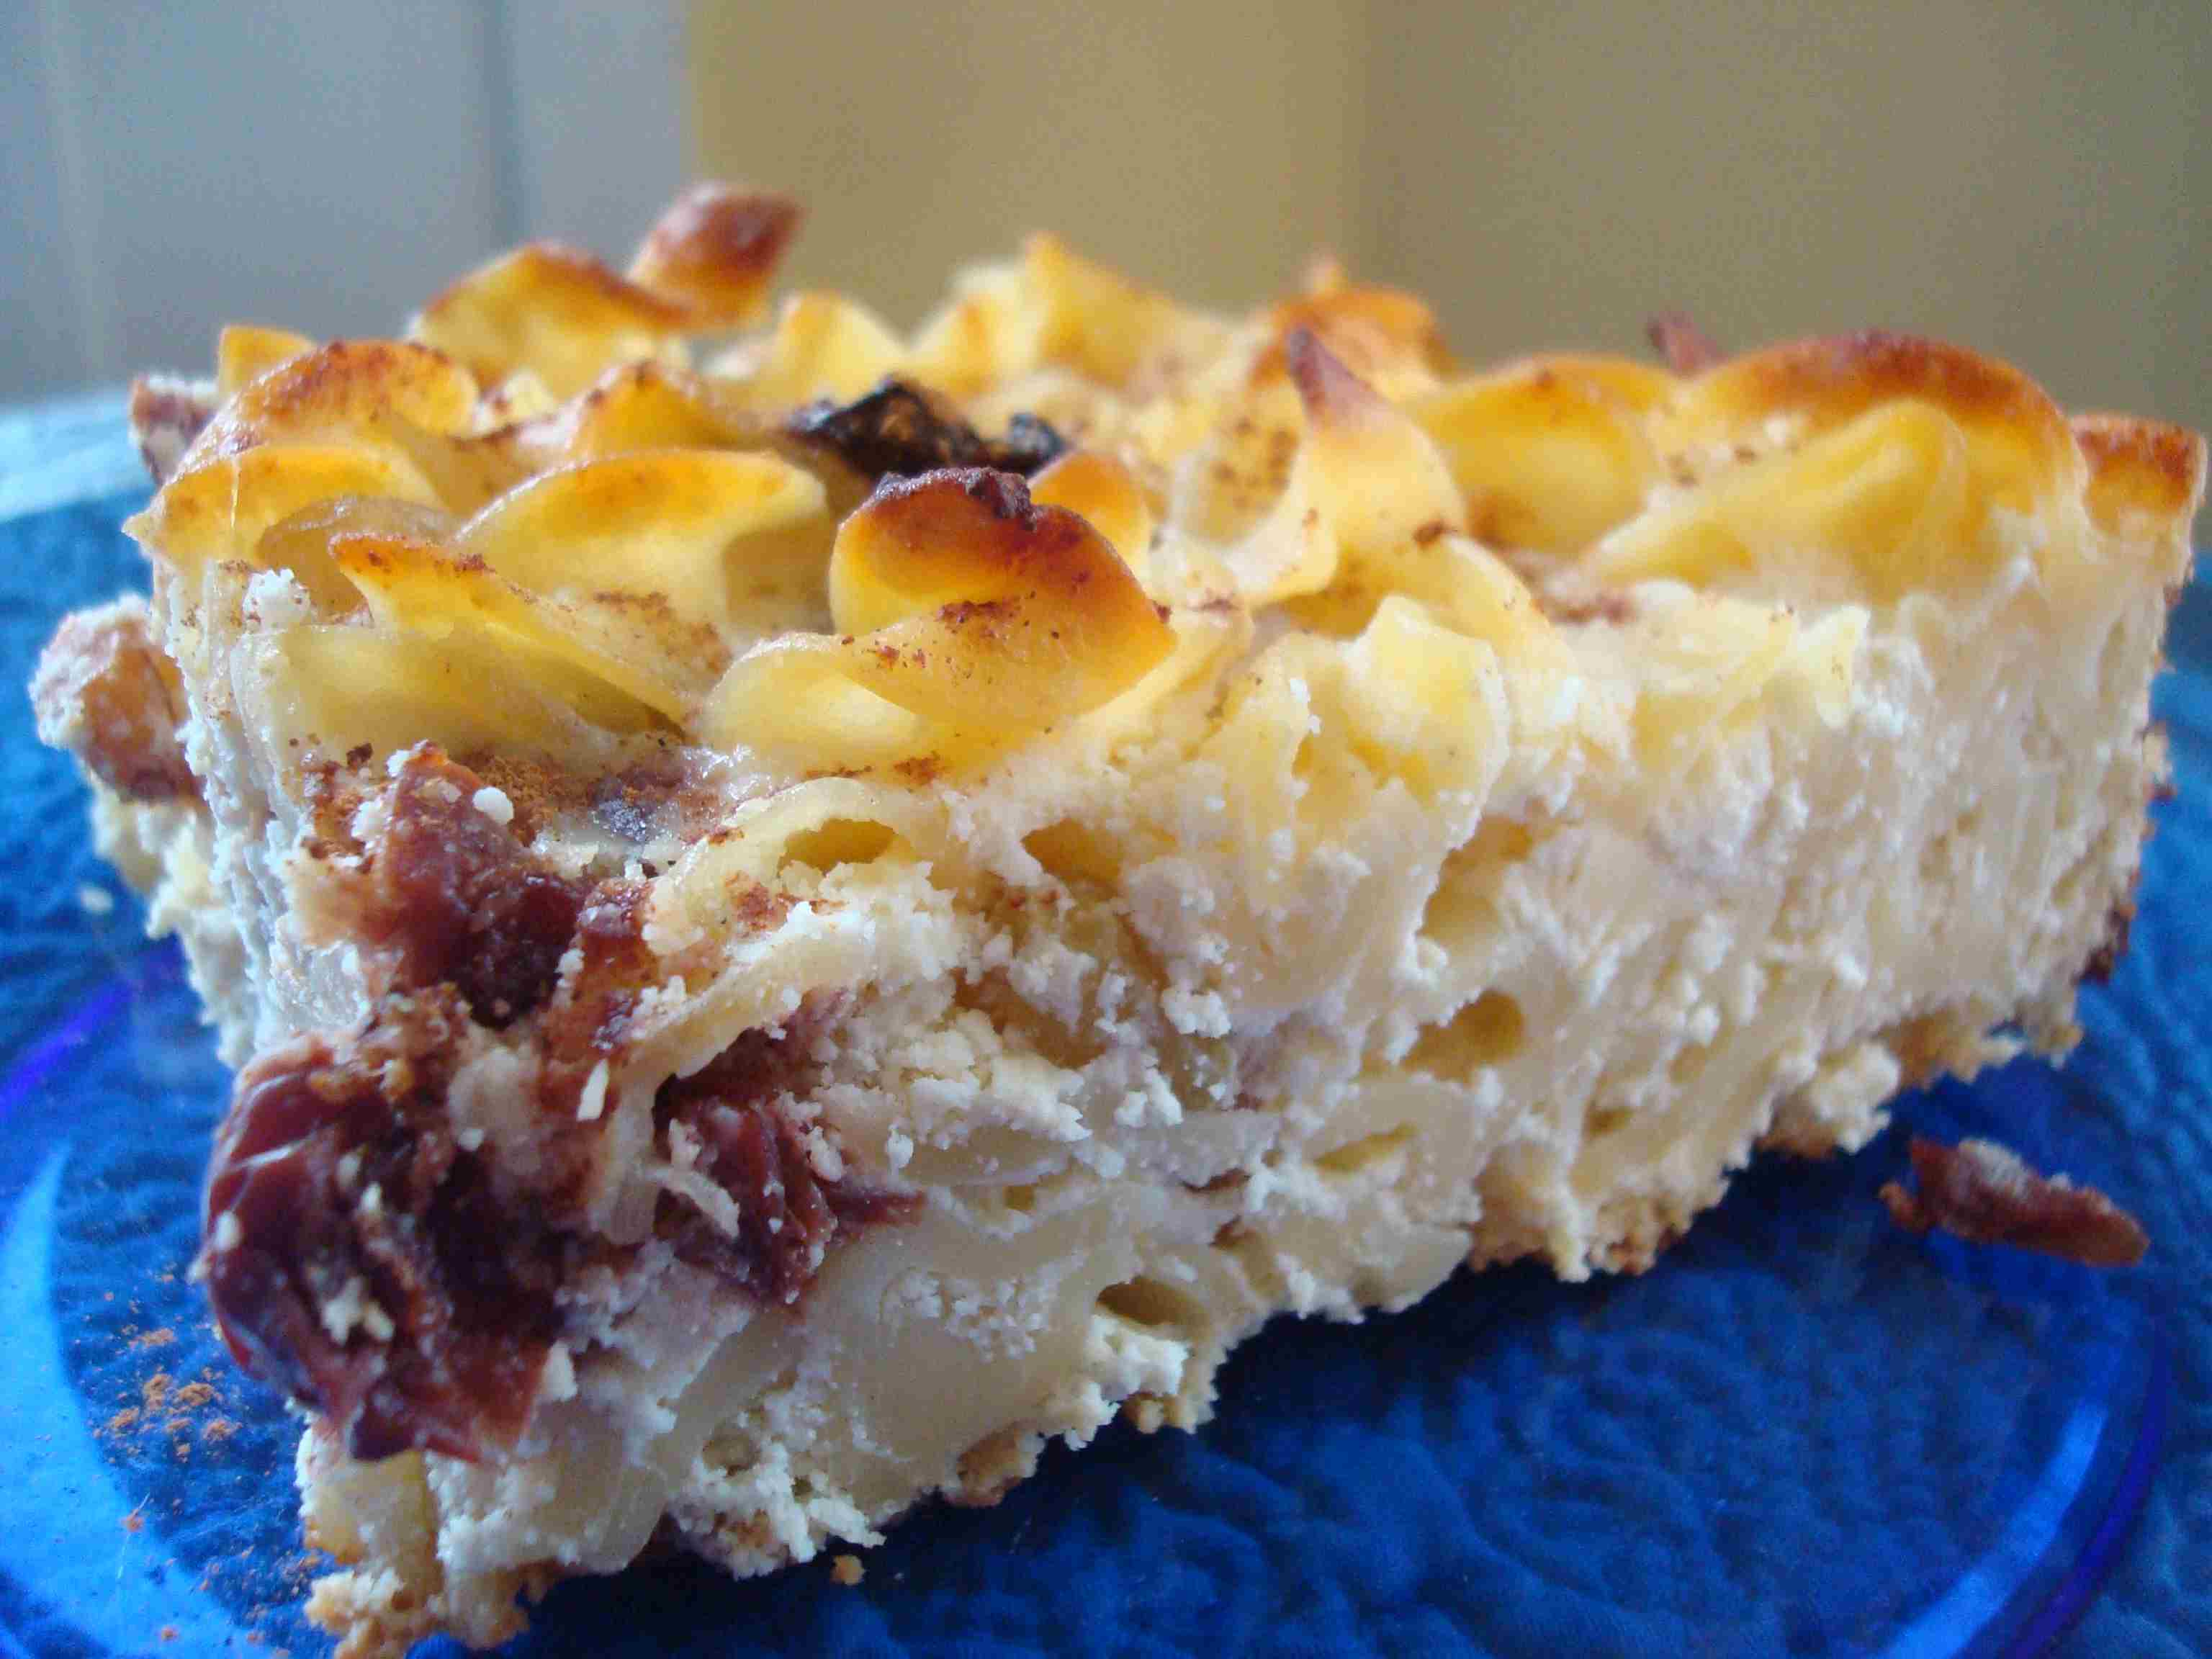 A portion of kugel made with ricotta cheese and dried cherries on a plate